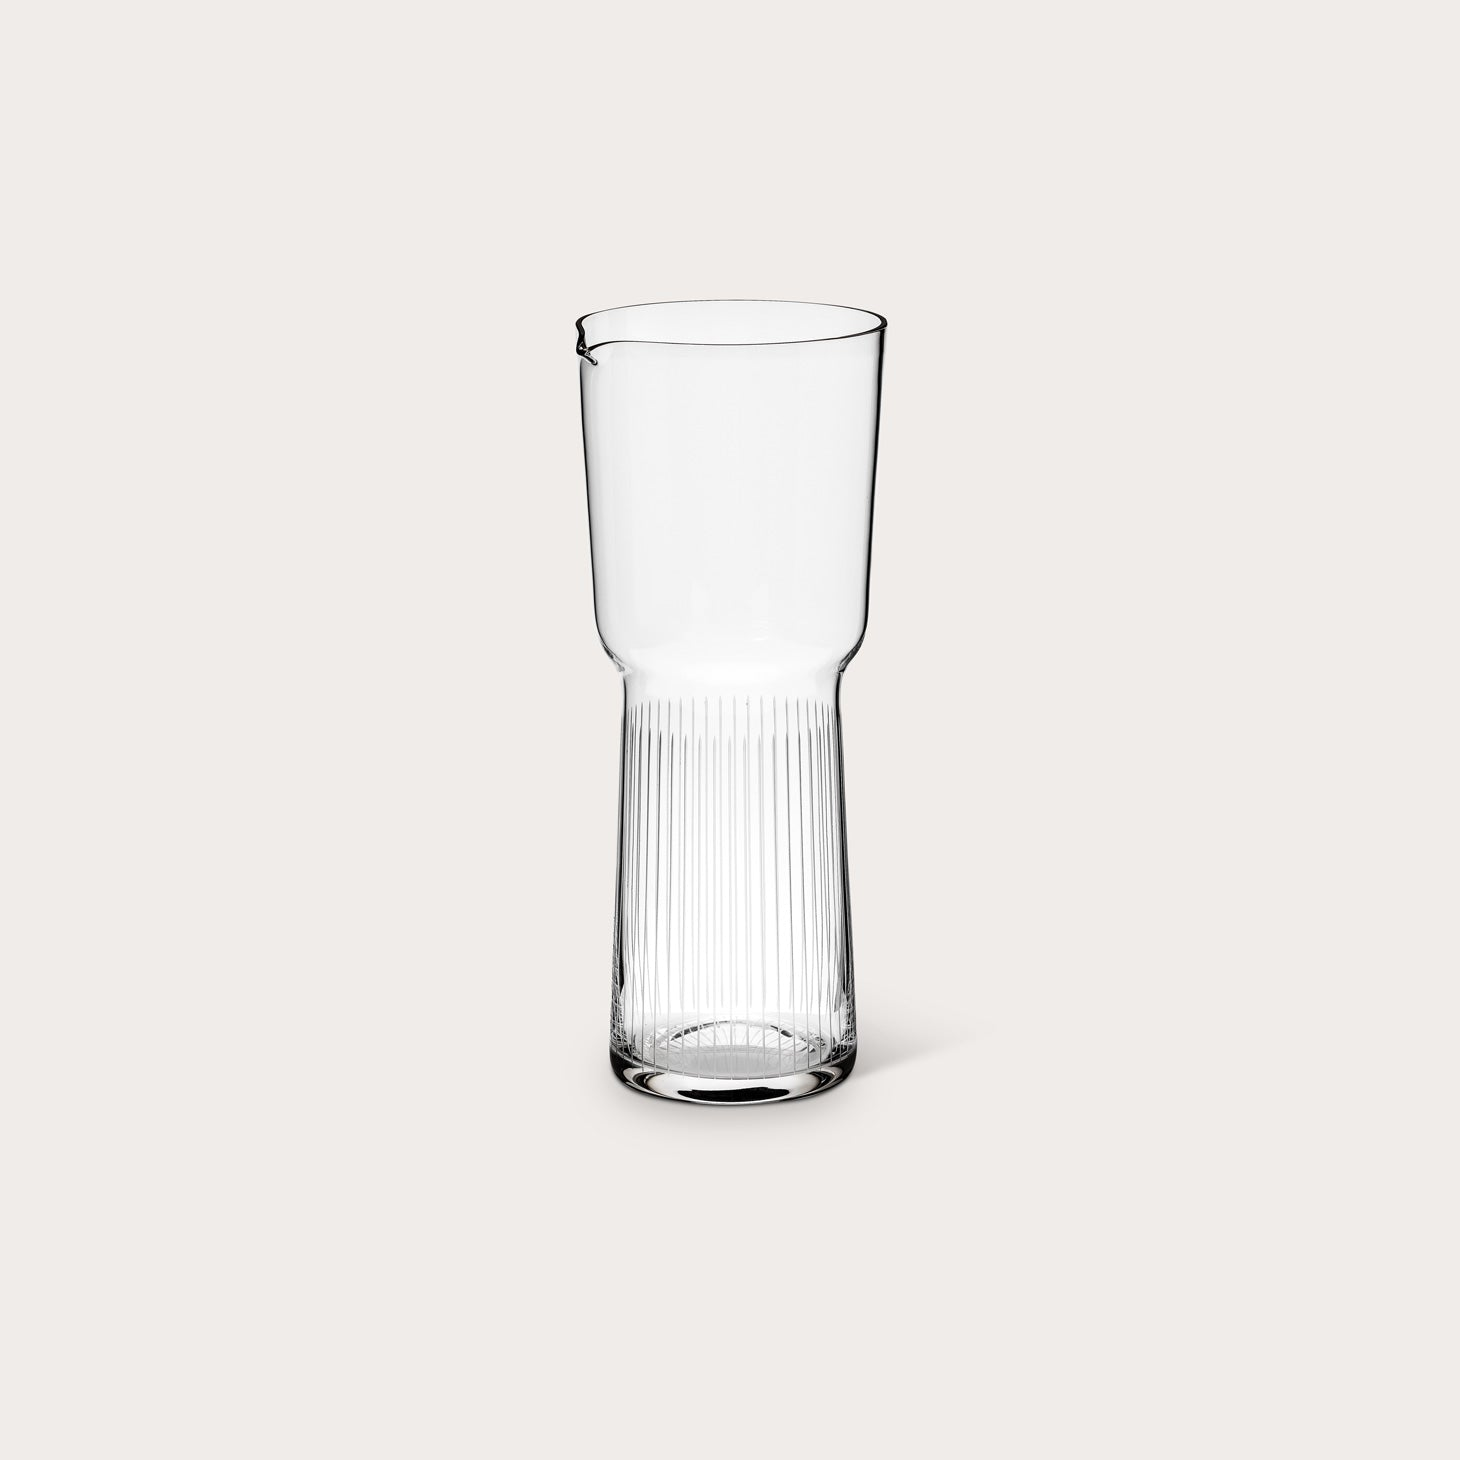 Otto Carafe Clear Accessories Yabu Pushelberg Designer Furniture Sku: 110-100-10000